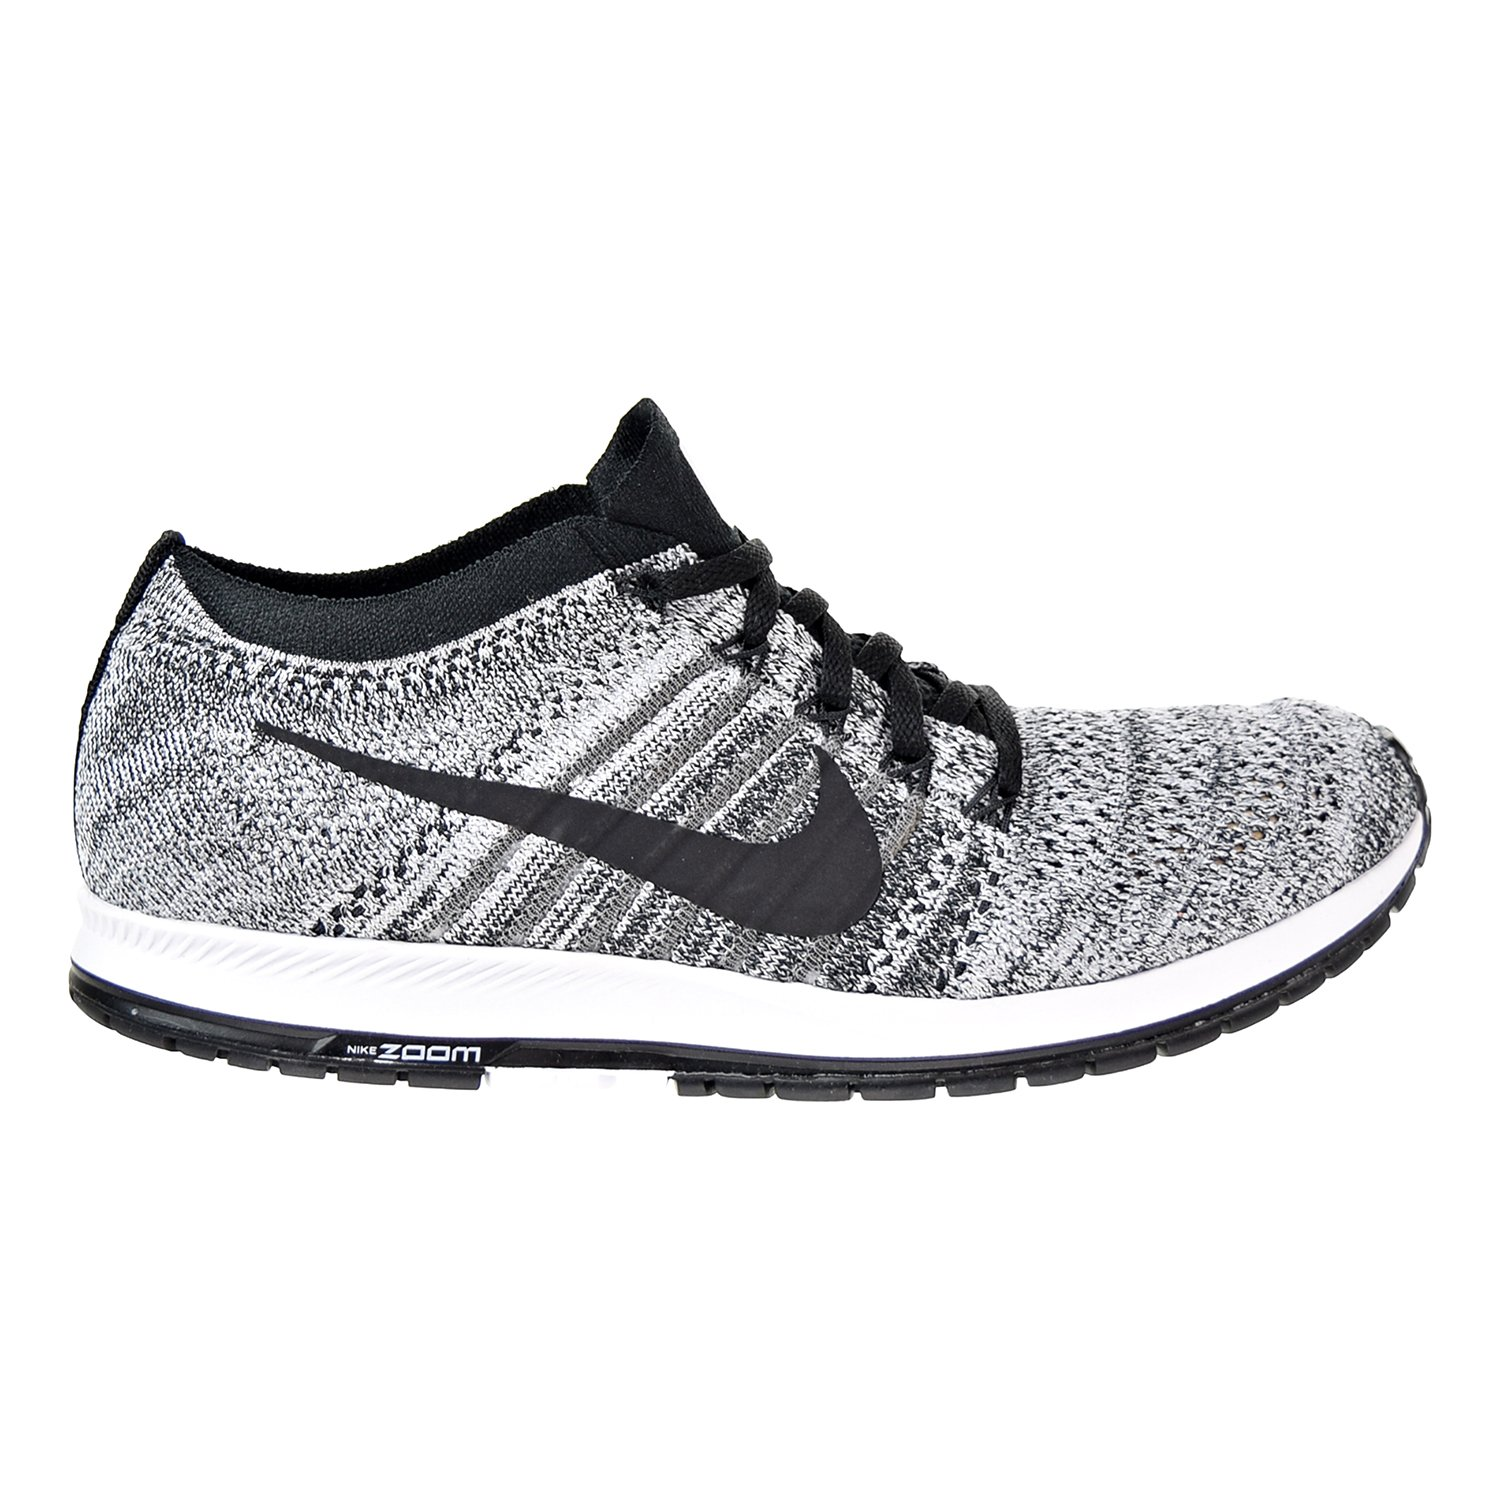 NIKE Flyknit Streak Mens Running Shoes